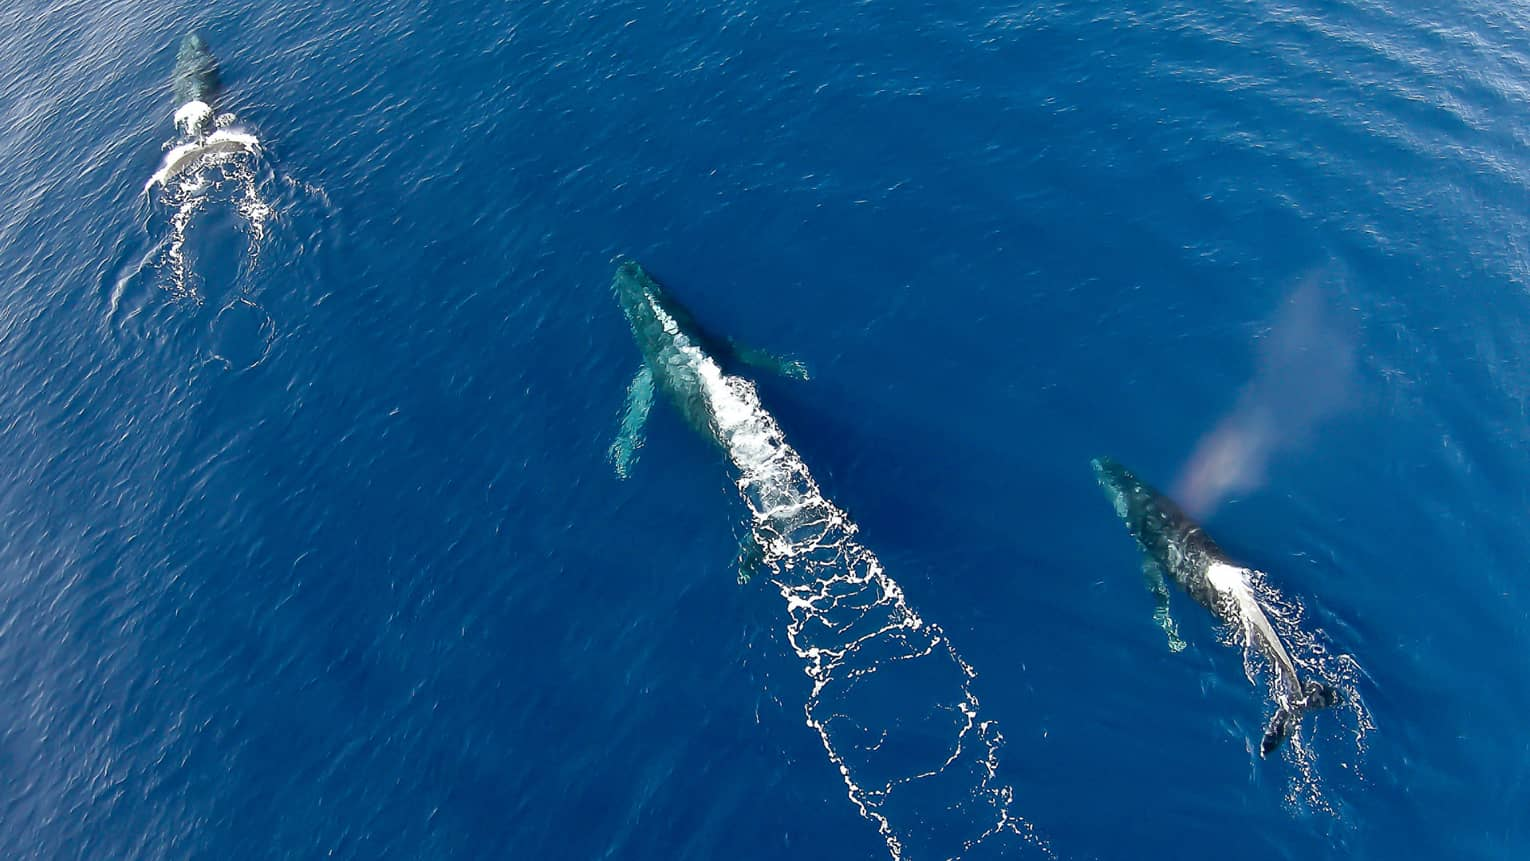 Aerial view of three whales swimming in ocean